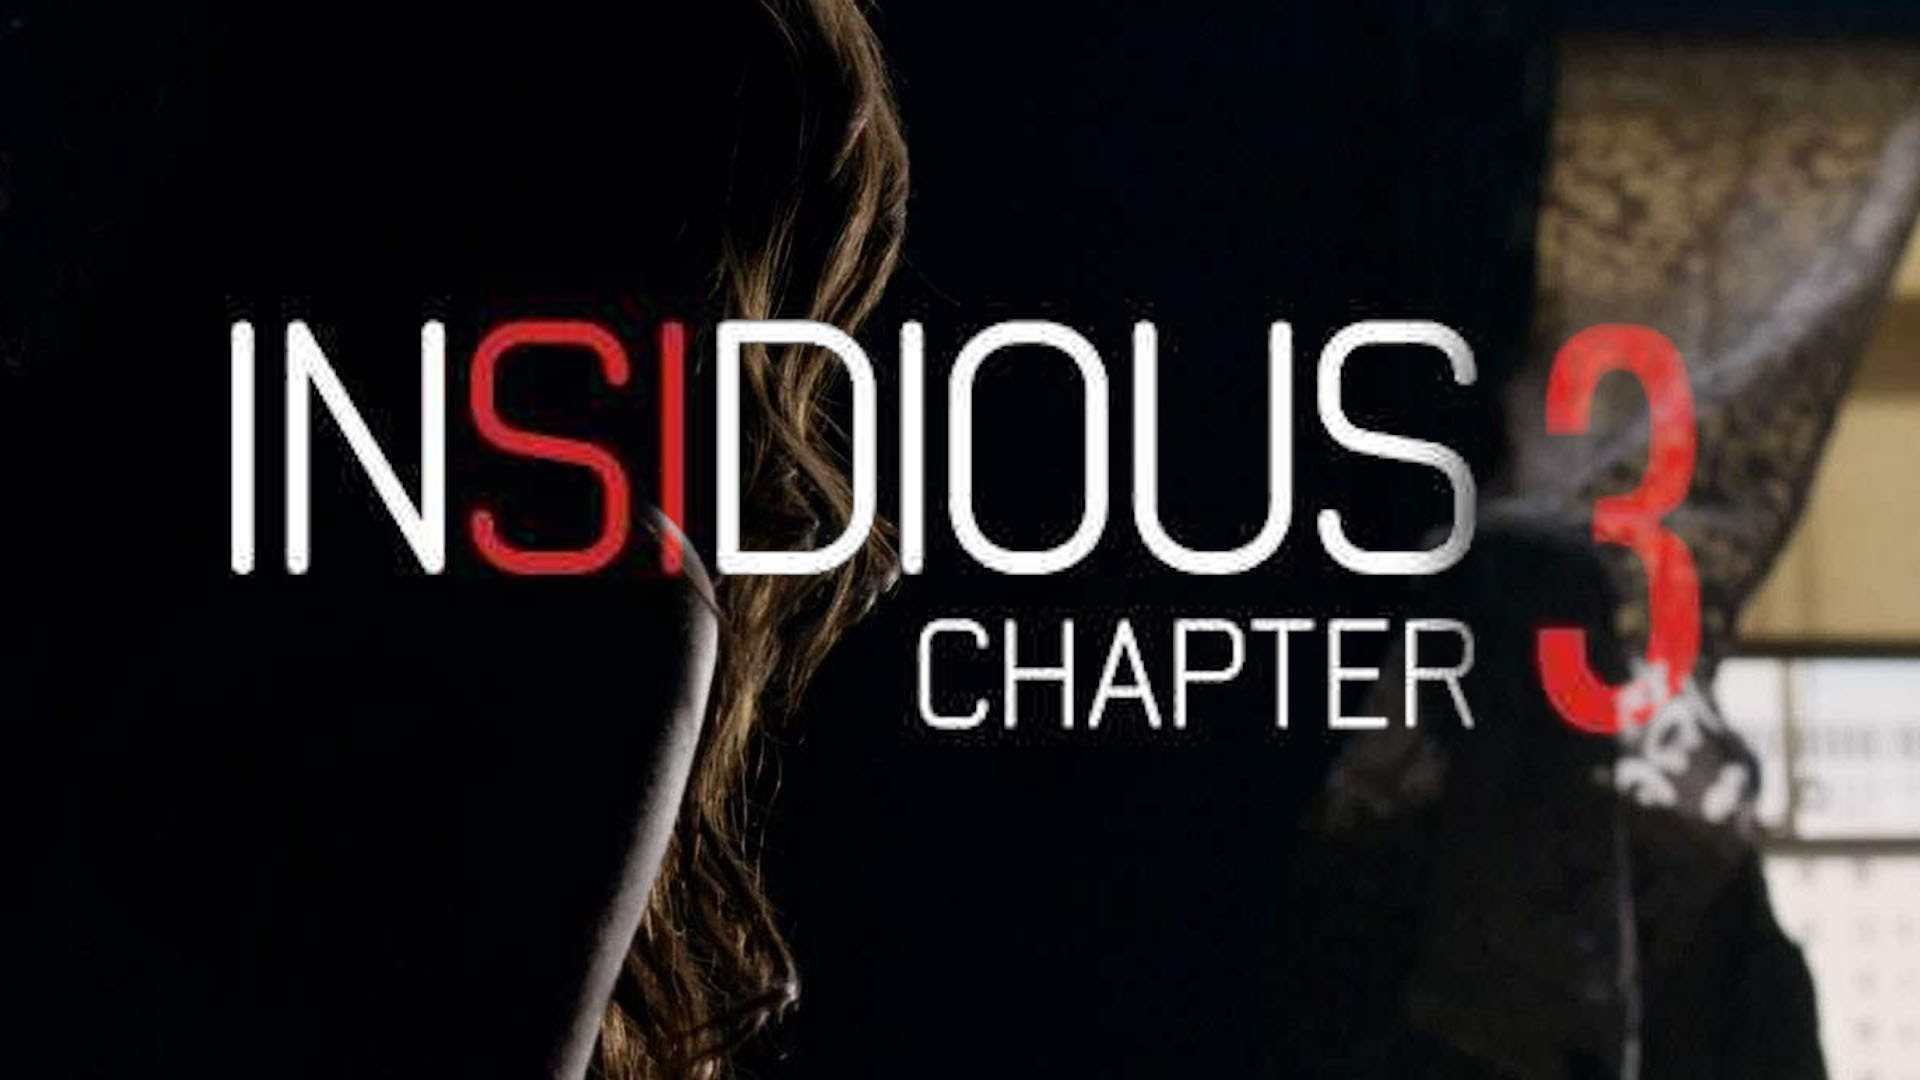 download insidious 3 full movie hd